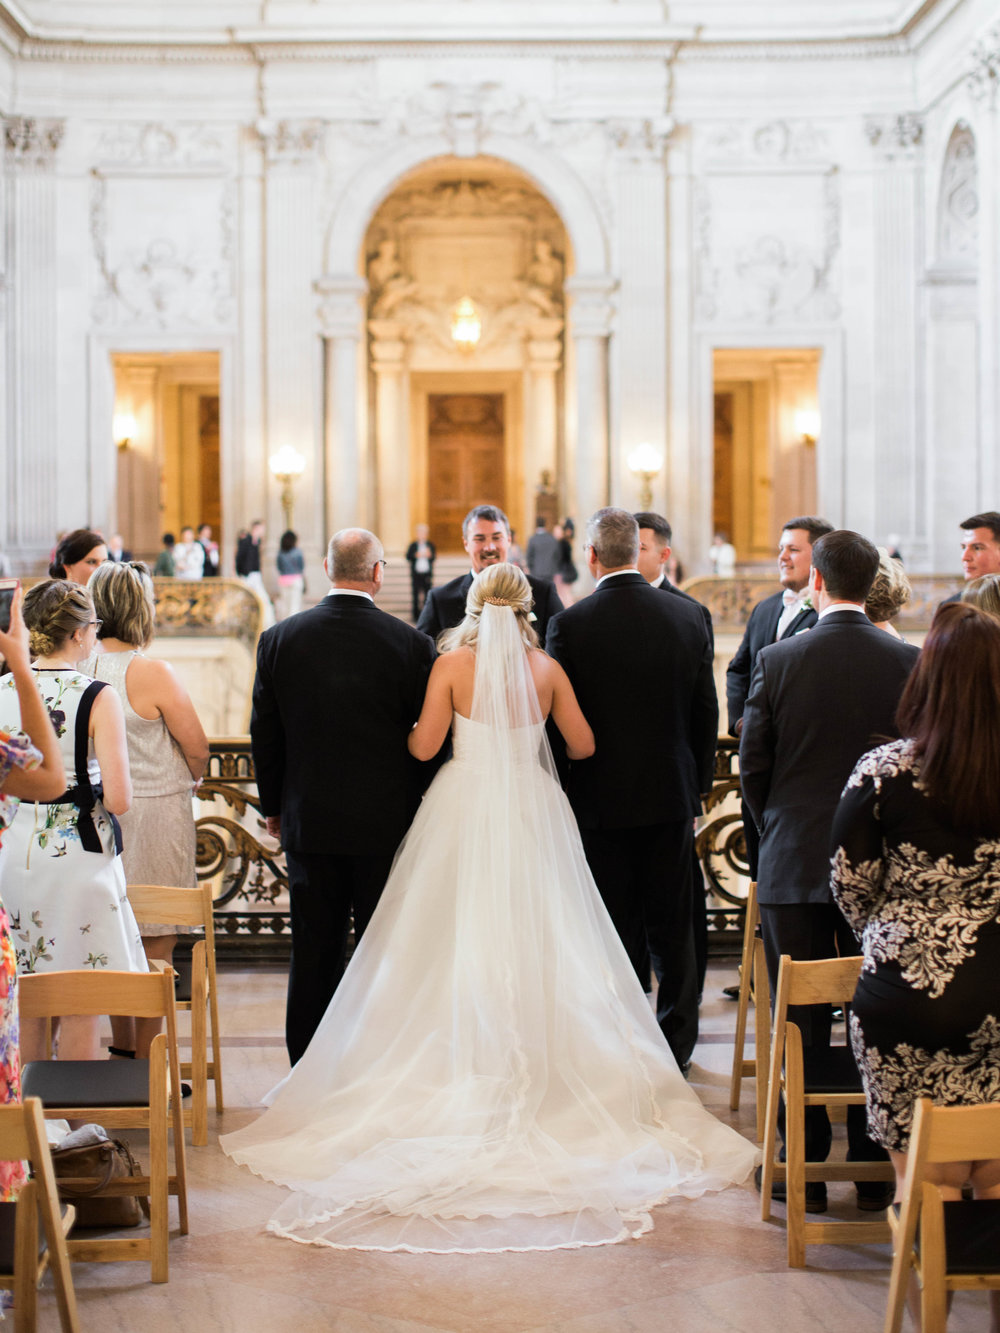 DennisRoyCoronel_Photography_SanFranciscoCityHall_Wedding-29.jpg